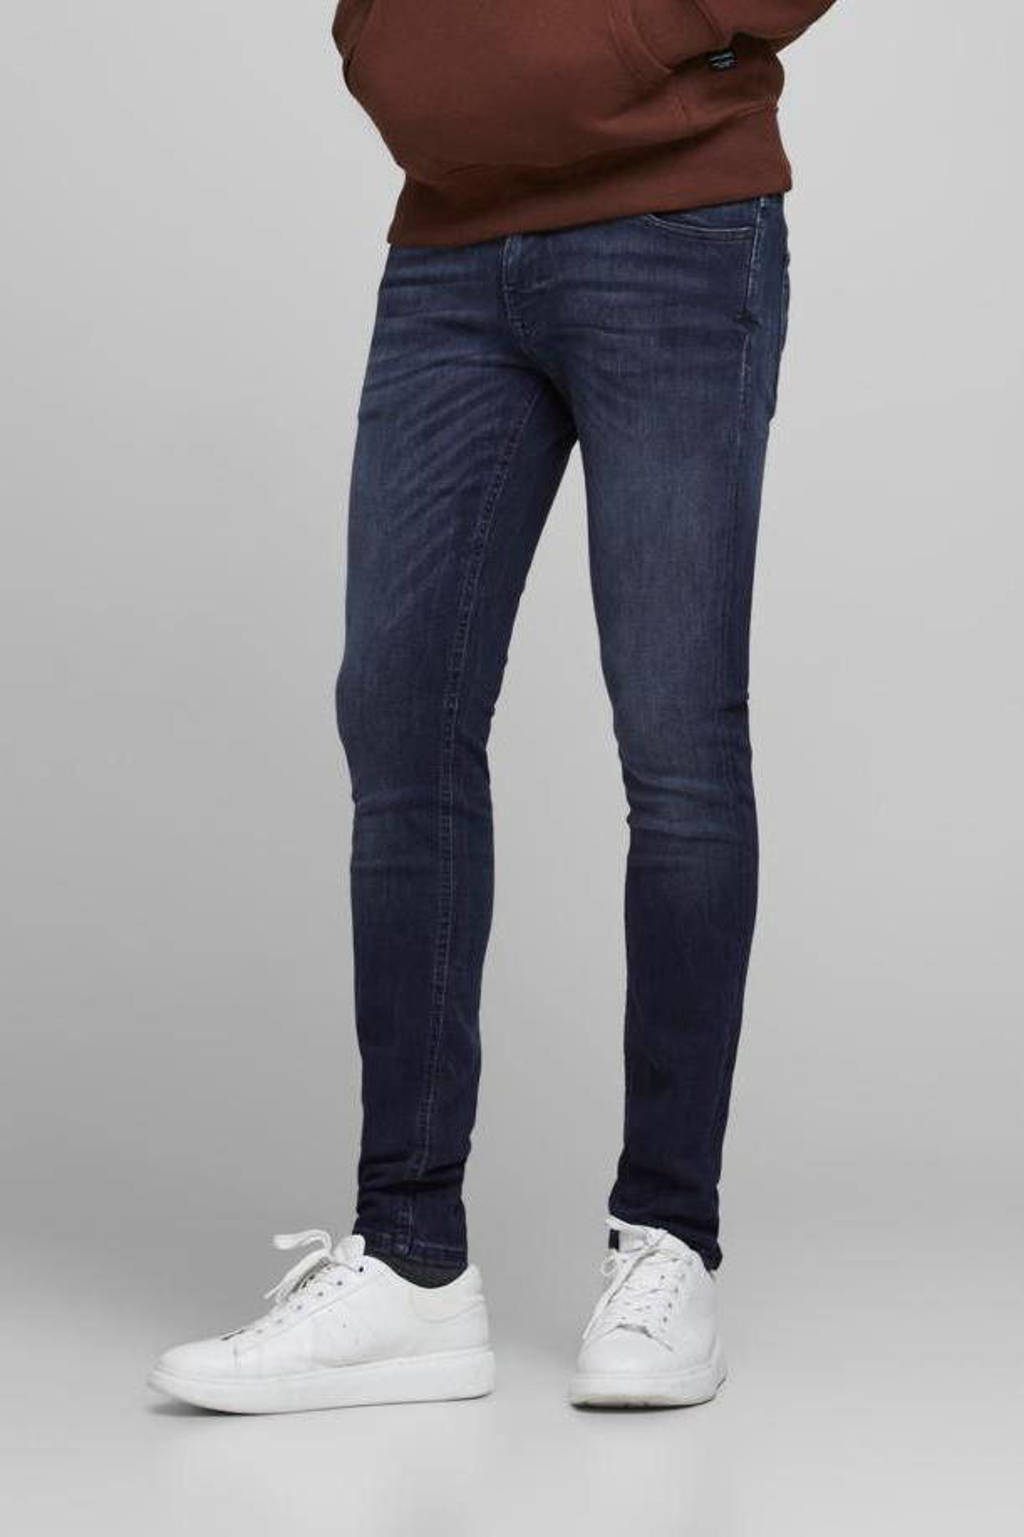 JACK & JONES JEANS INTELLIGENCE skinny jeans Liam Original dark blue denim, Dark  blue denim